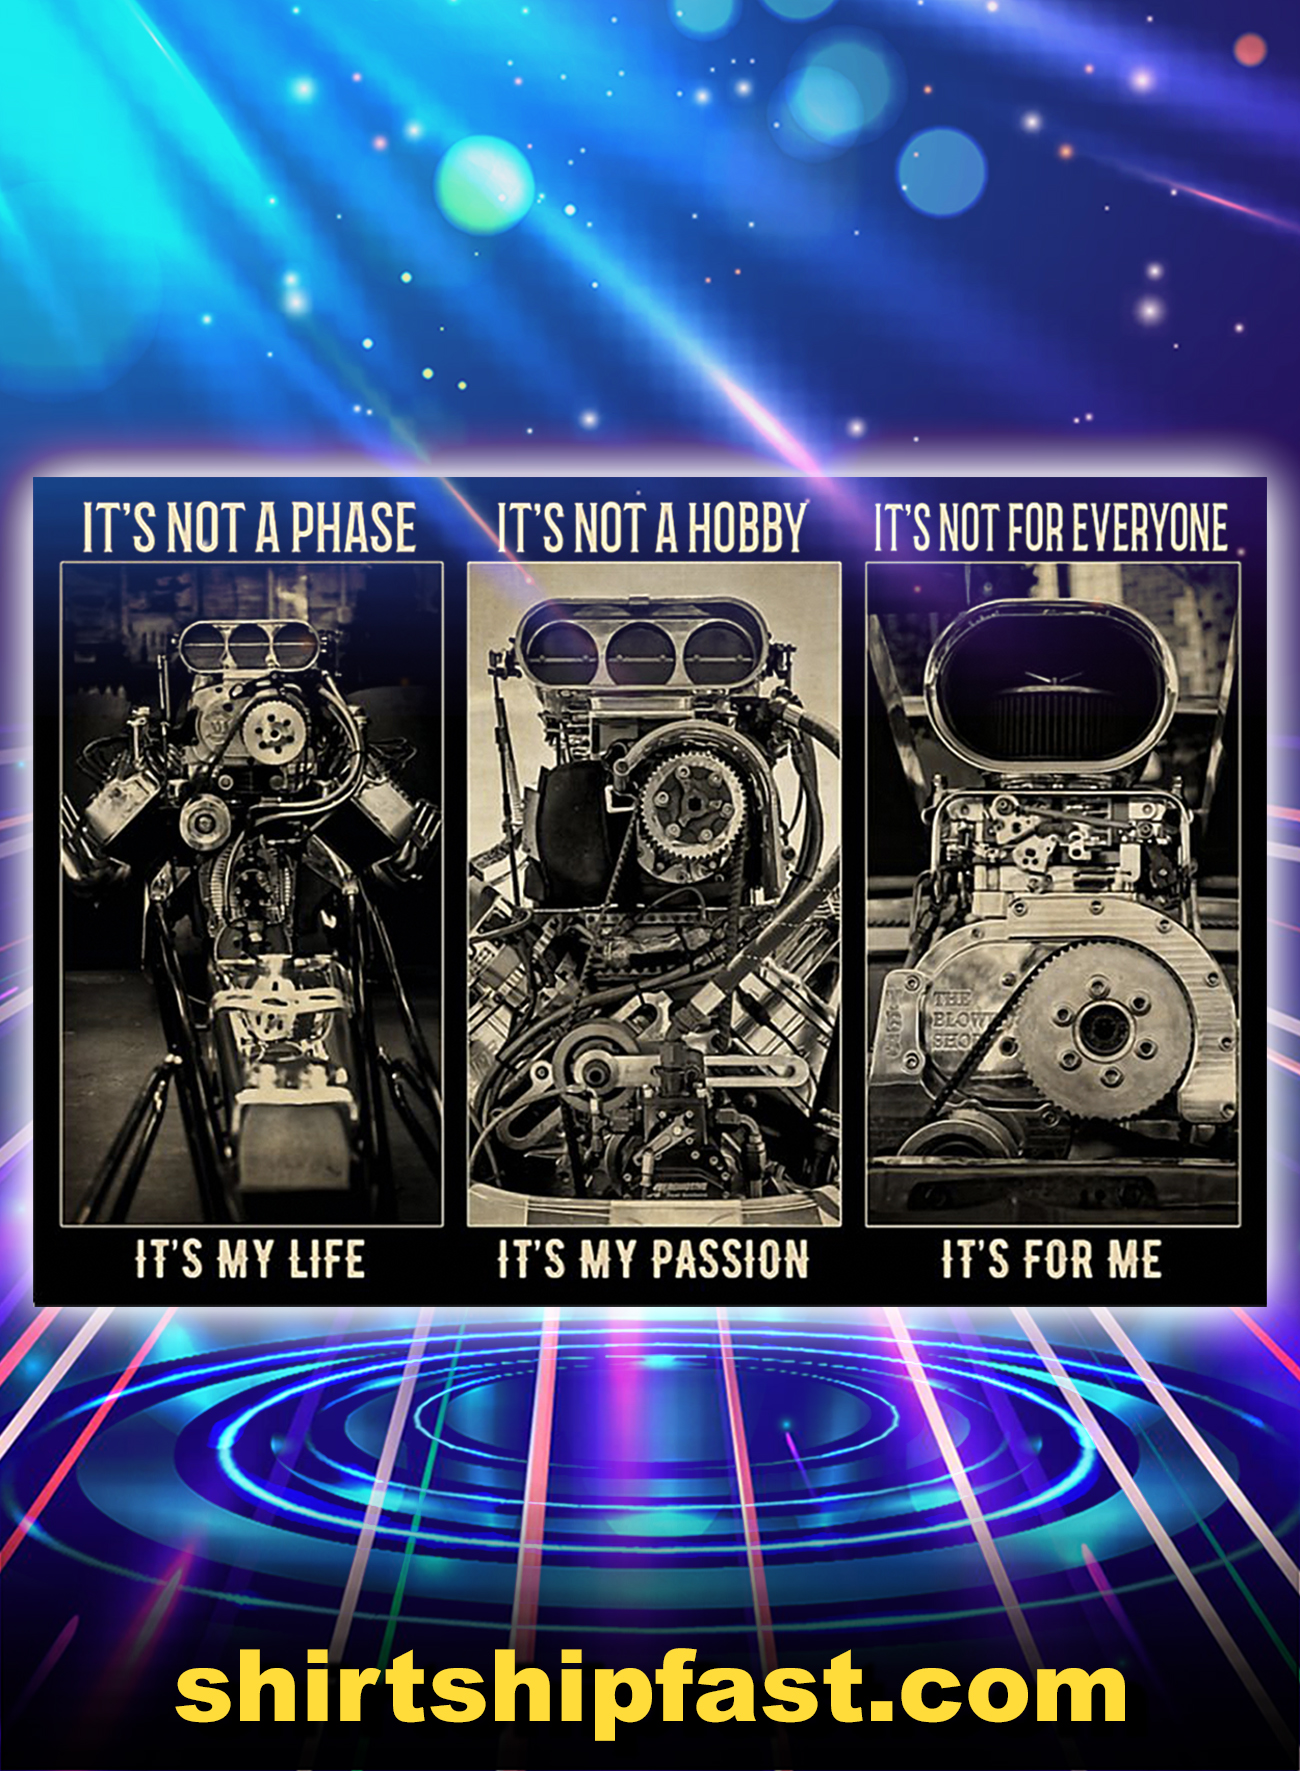 BW engine It's not a phase It's not a hobby It's not for everyone poster - A1